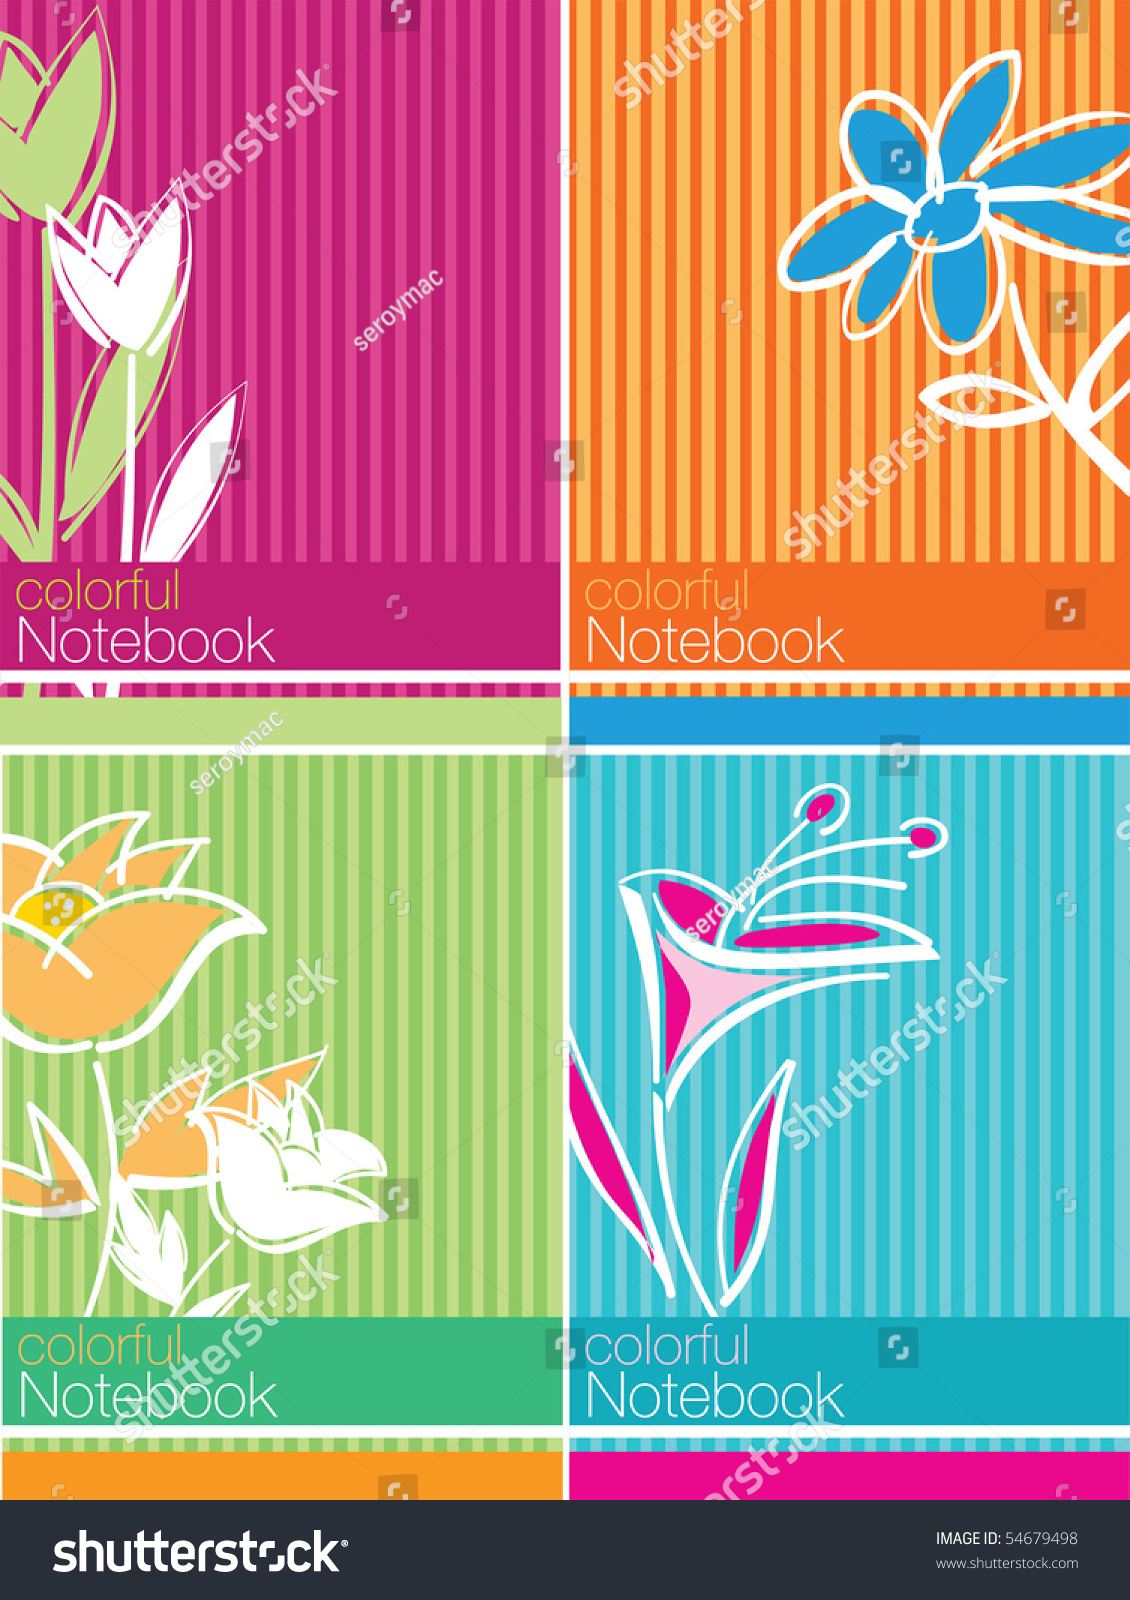 Free School Notebook Cover Vector : Colorful notebook cover design stock vector